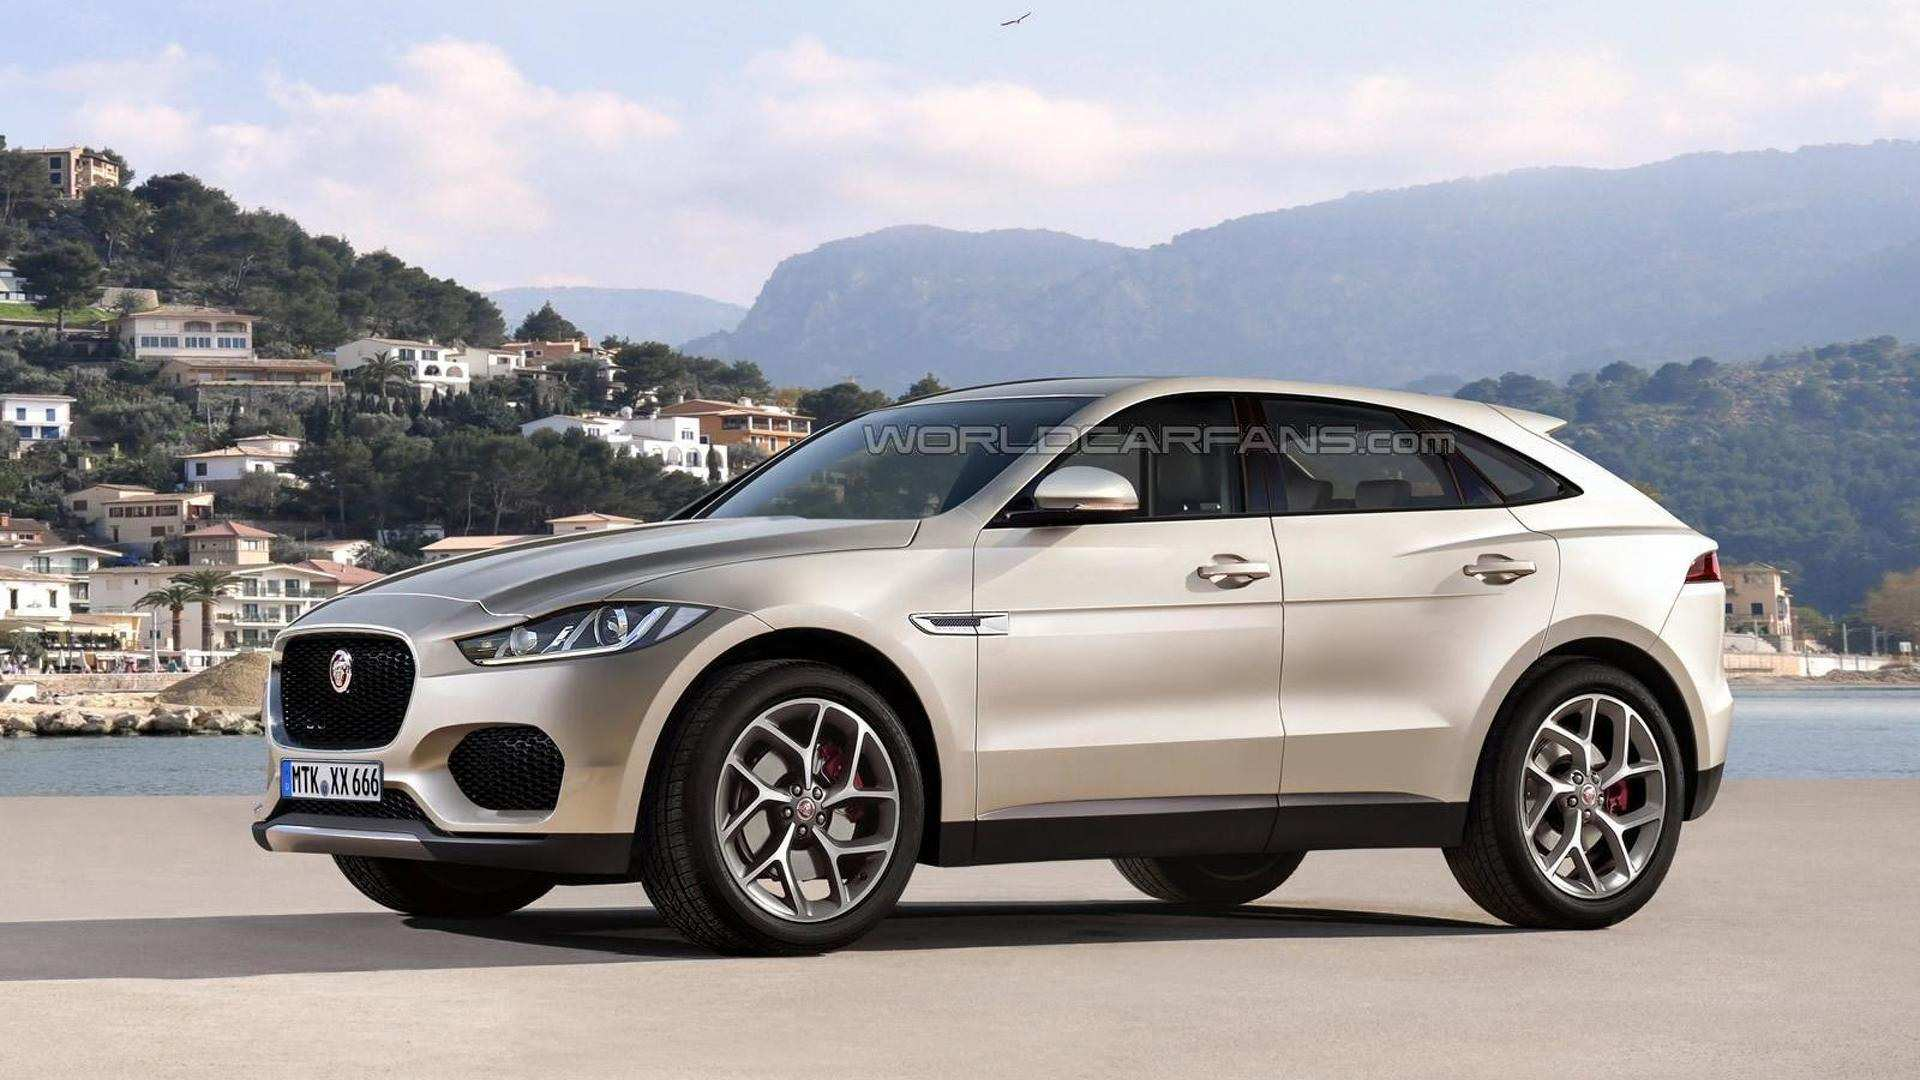 72 New 2020 Jaguar Suv Concept by 2020 Jaguar Suv